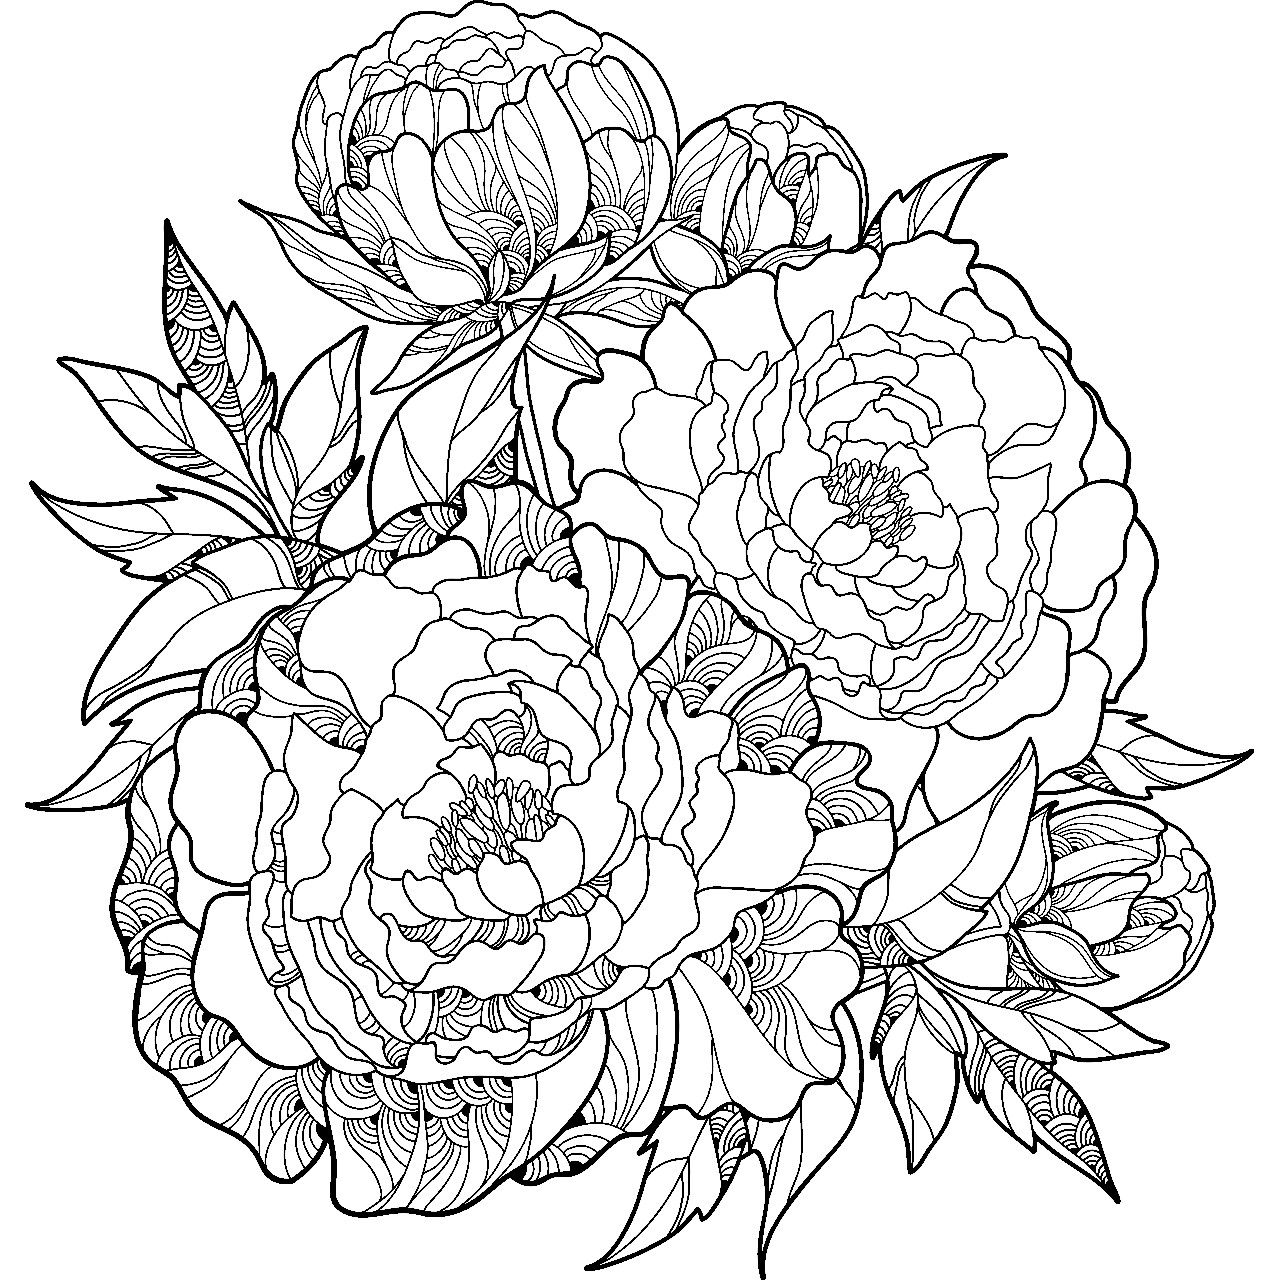 coloring stencils harmony of nature adult coloring book pg 28 color pages stencils coloring